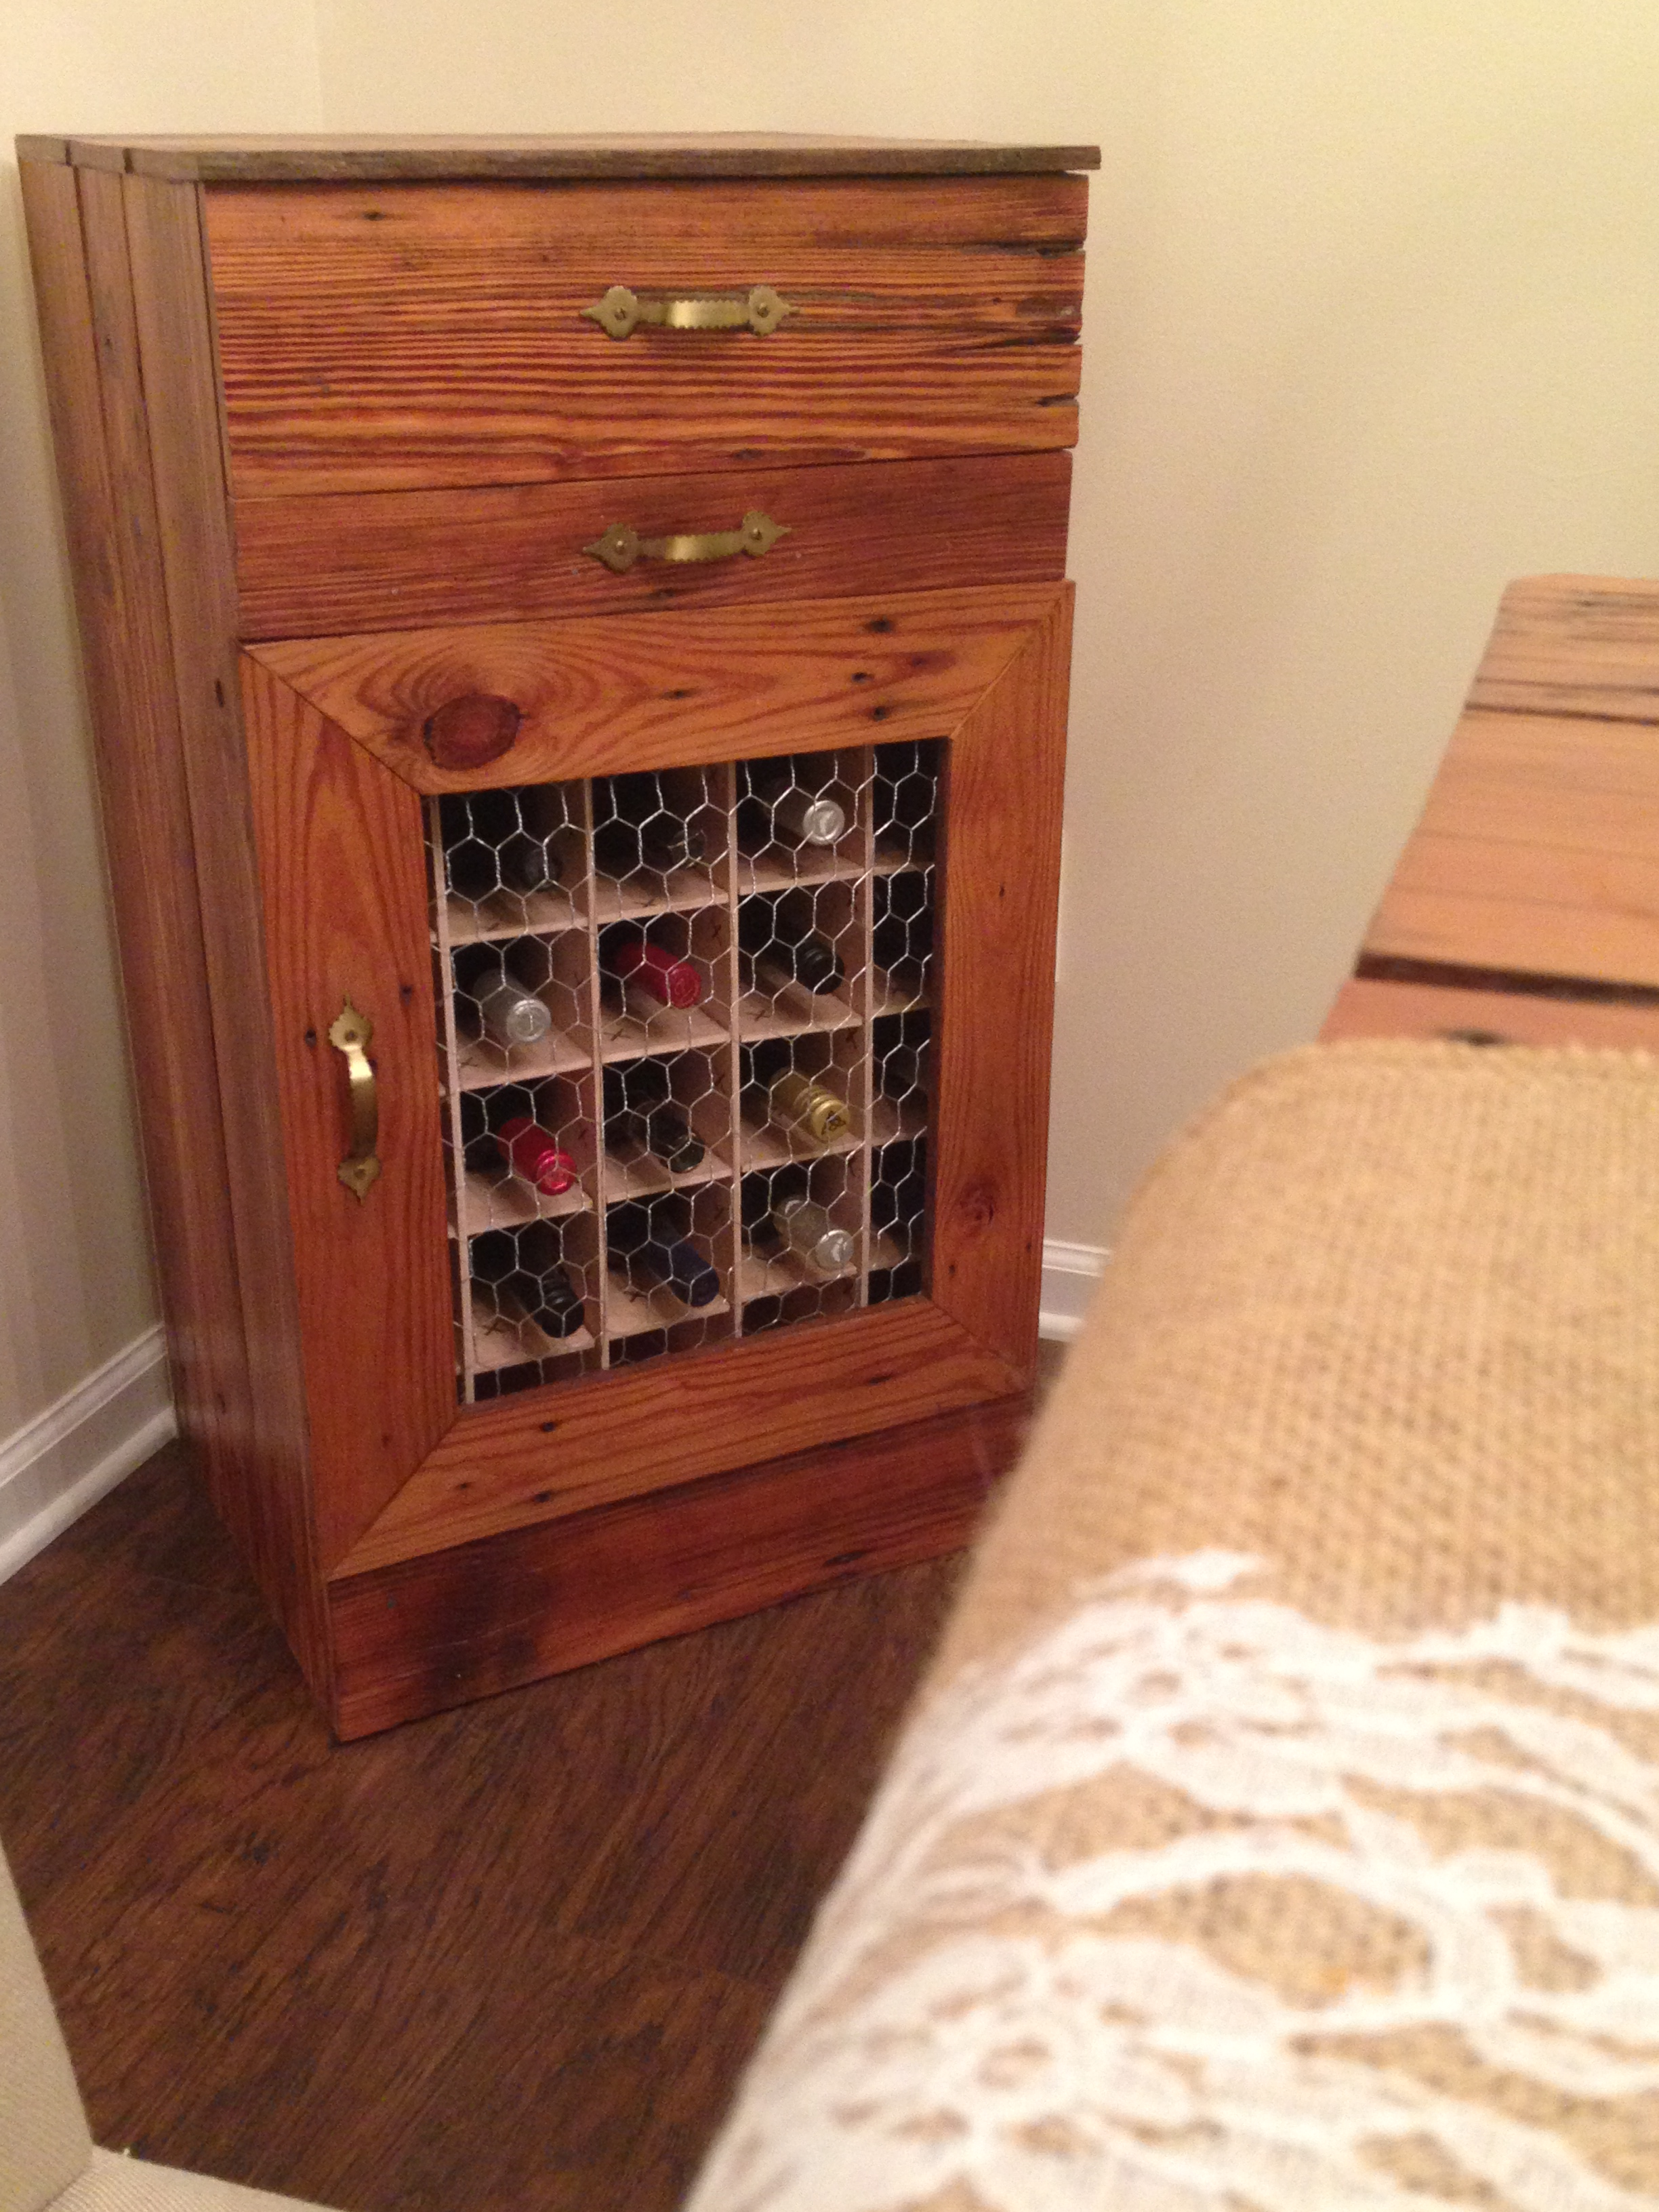 Do It Yourself Home Design: Wine Cabinet From Barn Boards - DIY Projects